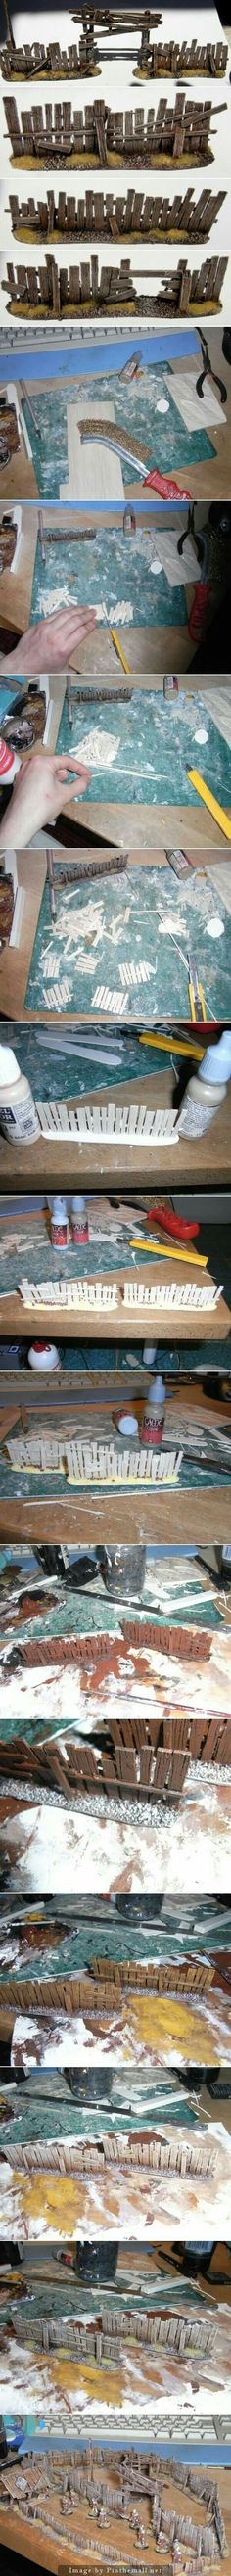 Fence wood diorama model basis #modeltrains